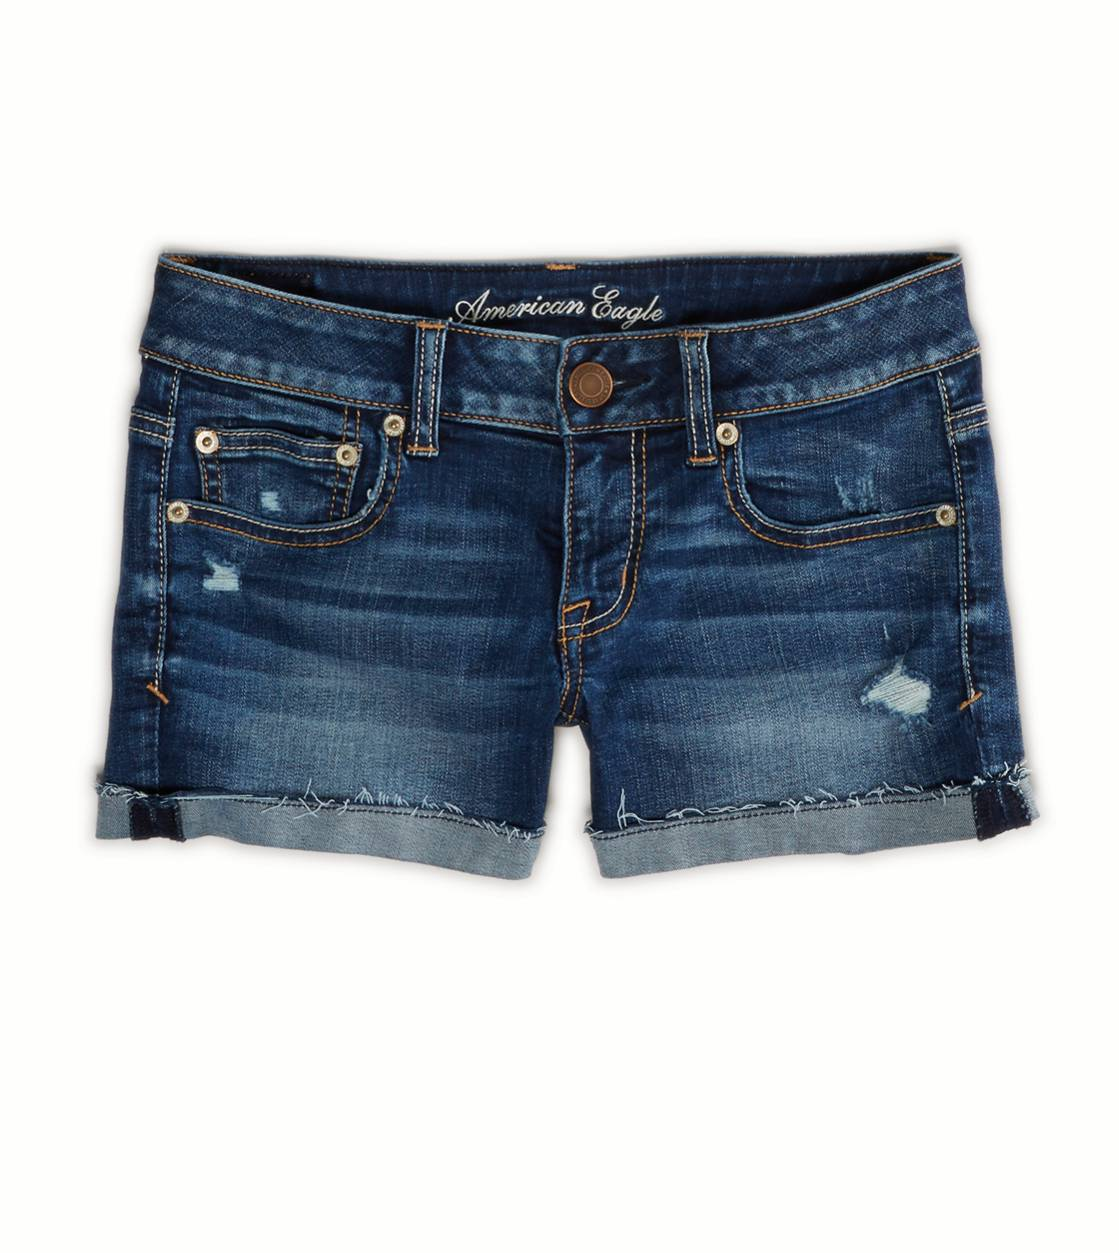 Medium Wash AE Denim Shortie